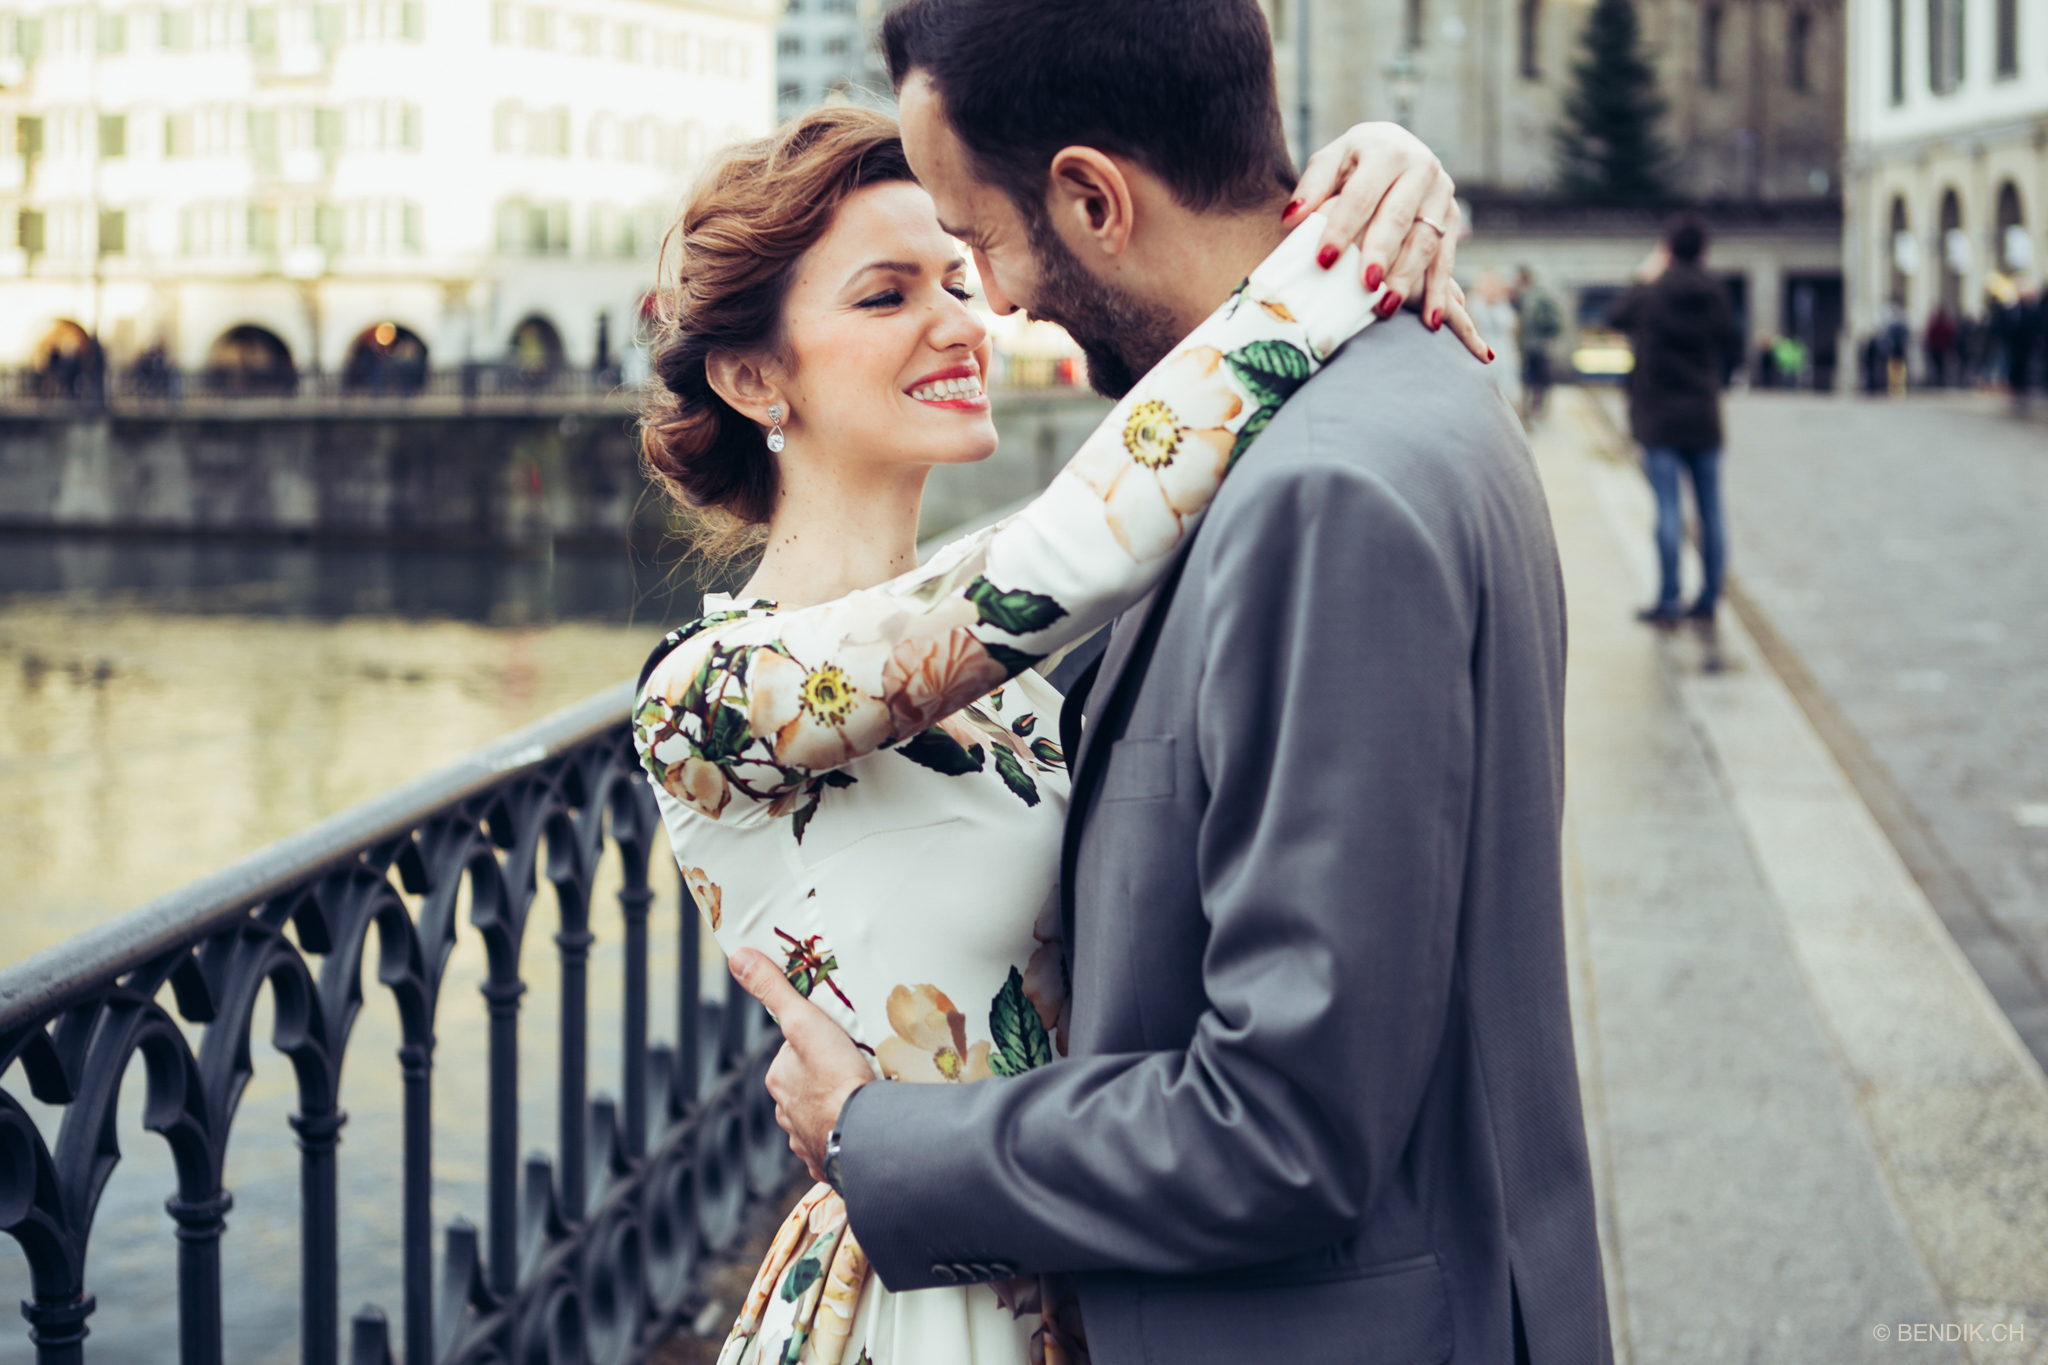 s_wedding_photoshoot_zurich_s_a_20161118_068